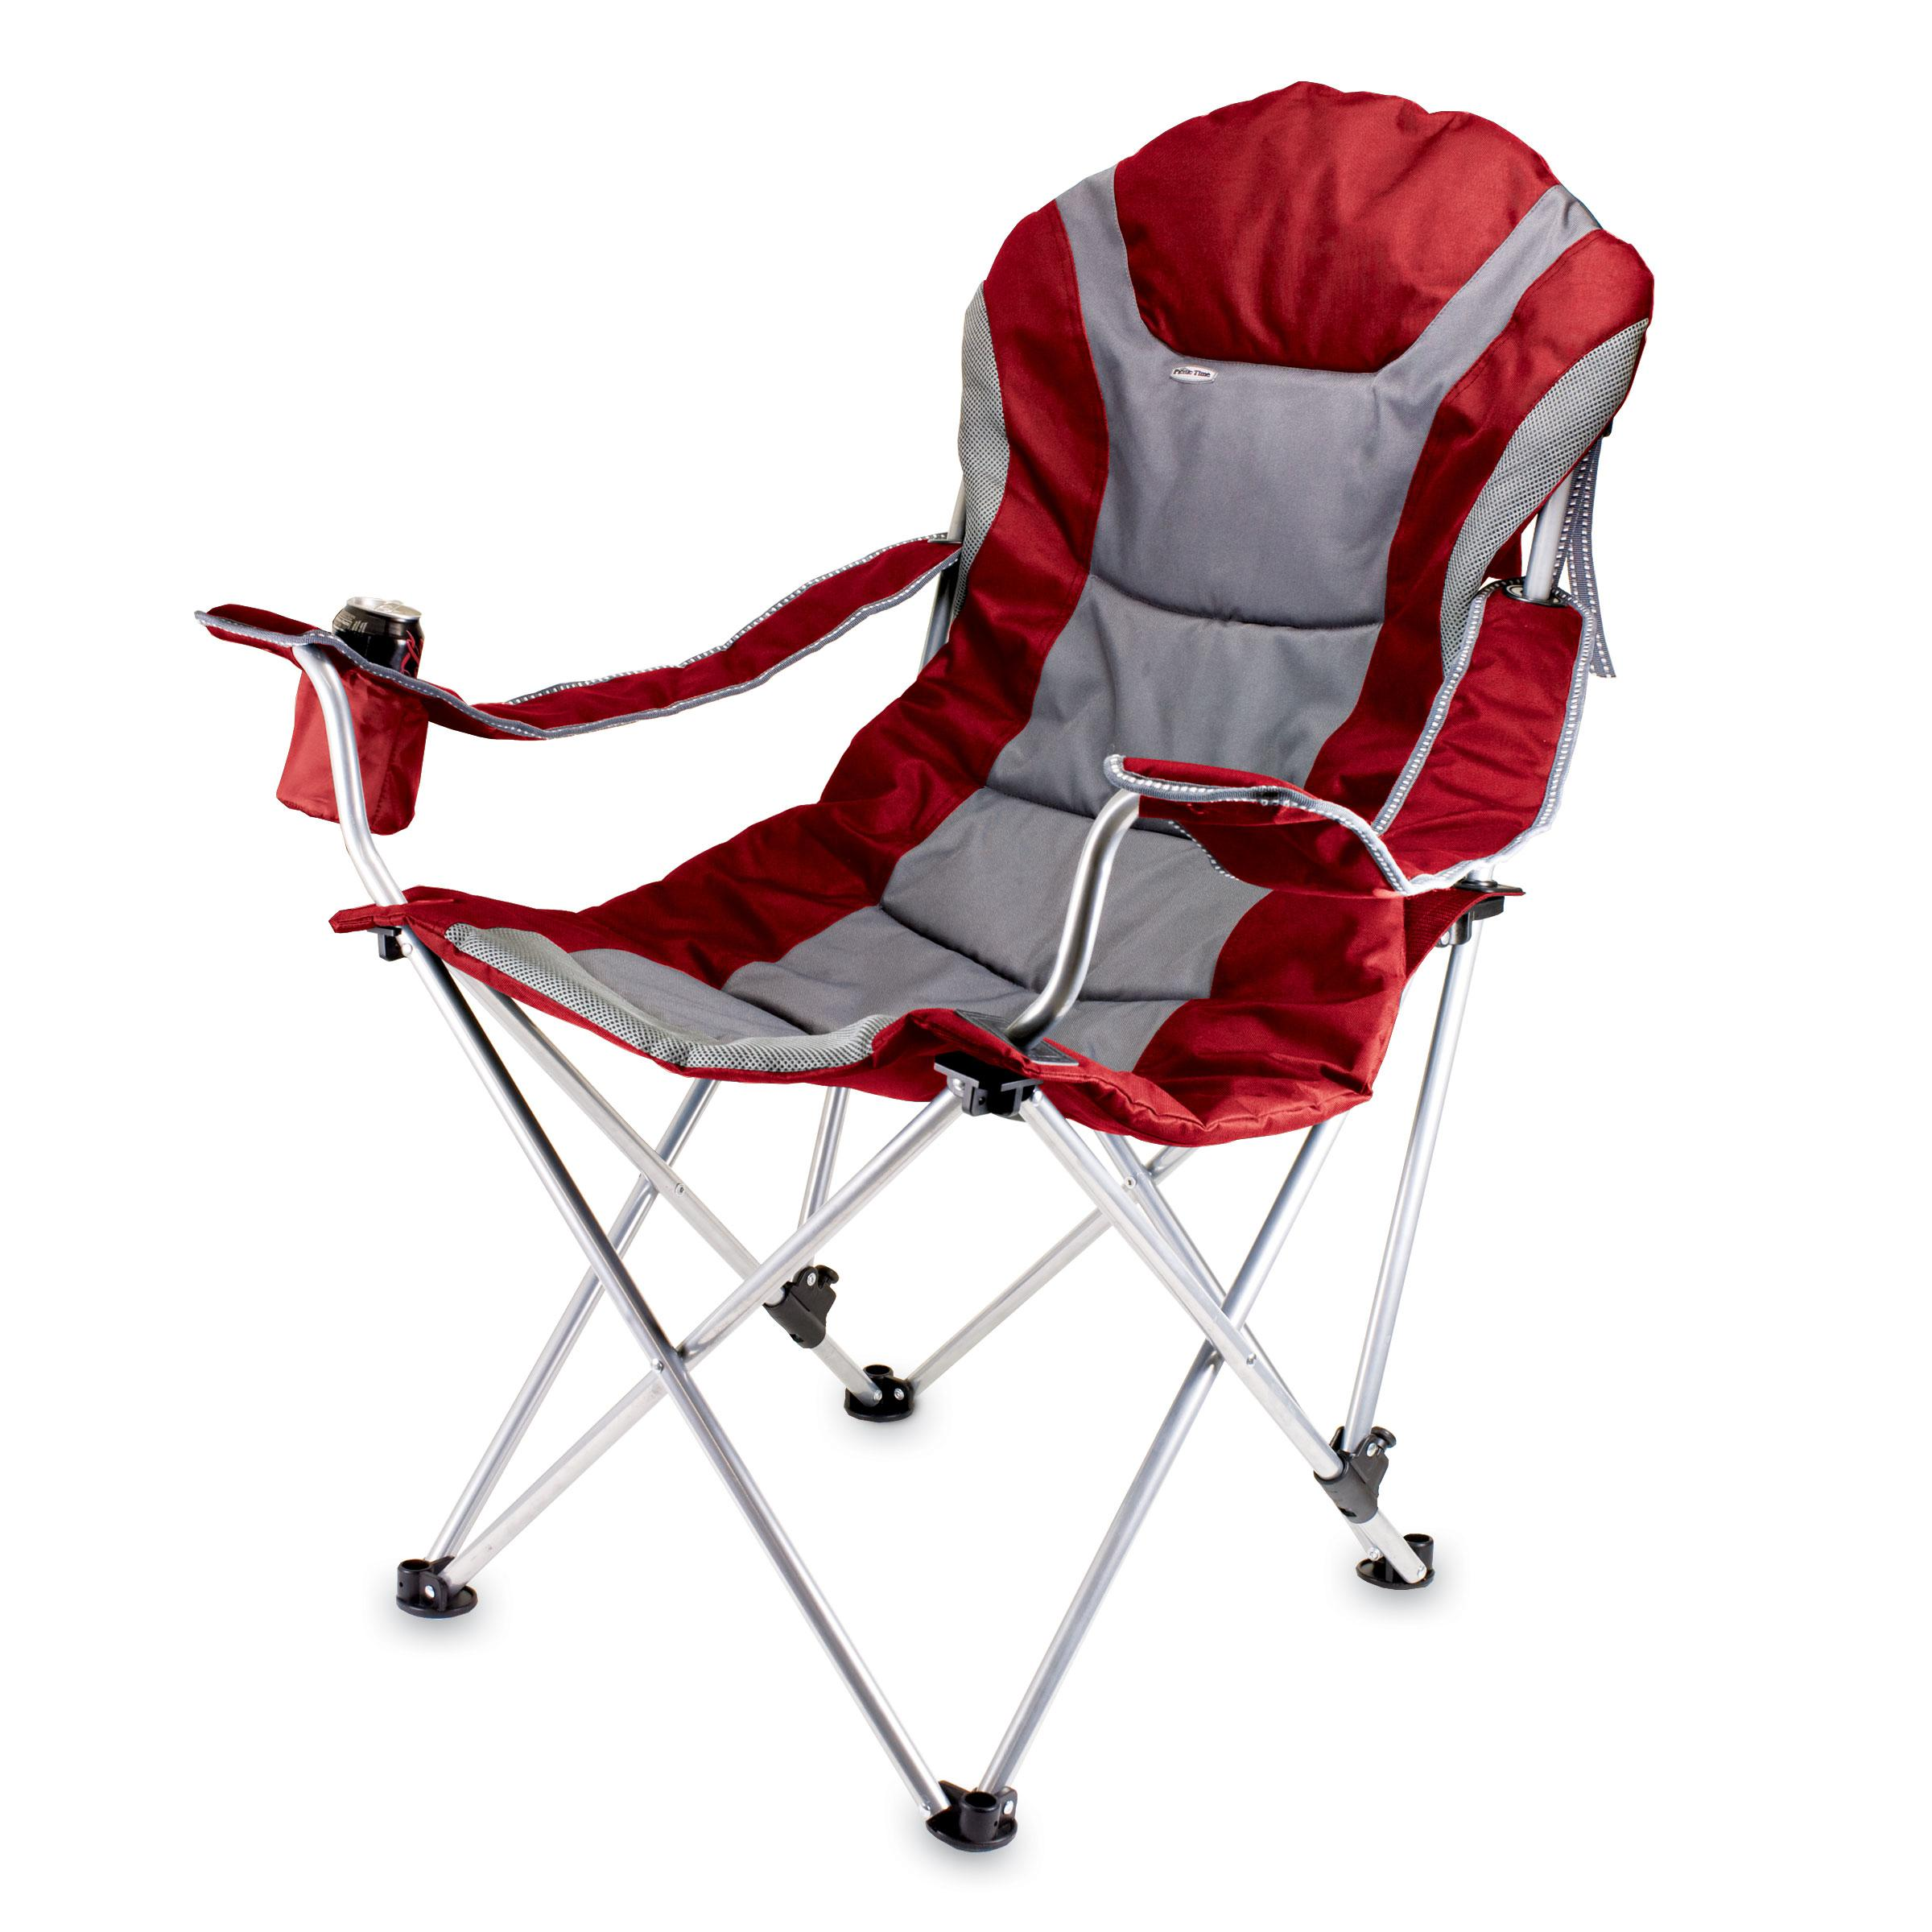 Picnic Time Portable Reclining Camp Chair Black Gray Amazon